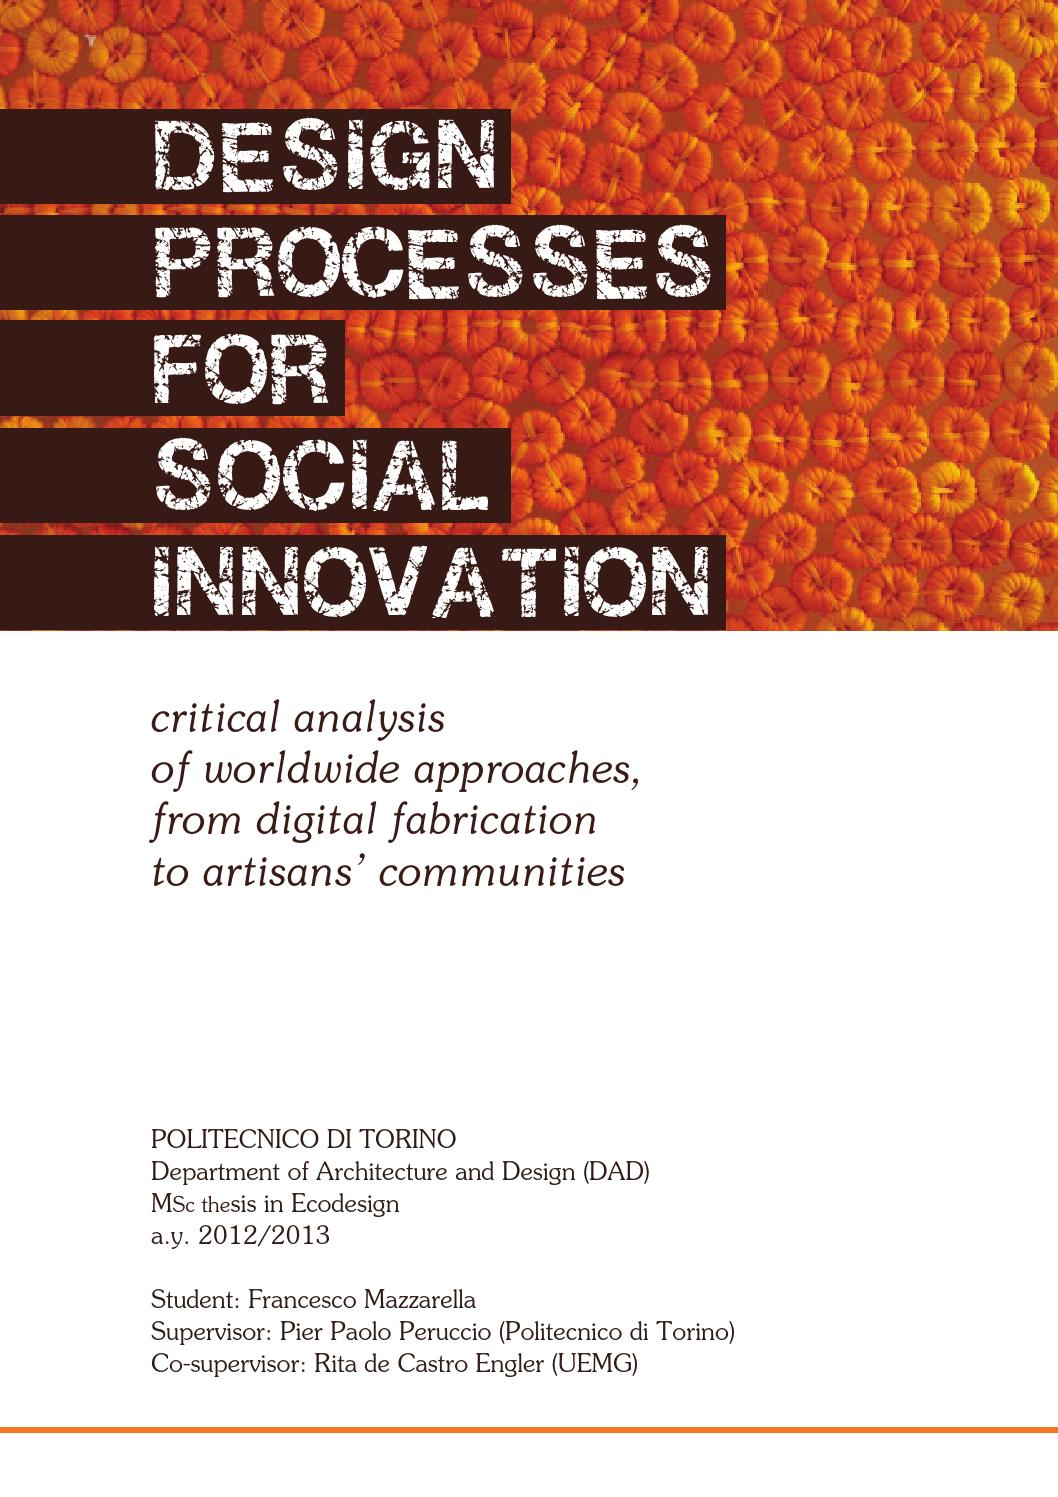 F mazzarella Design processes for social innovation by